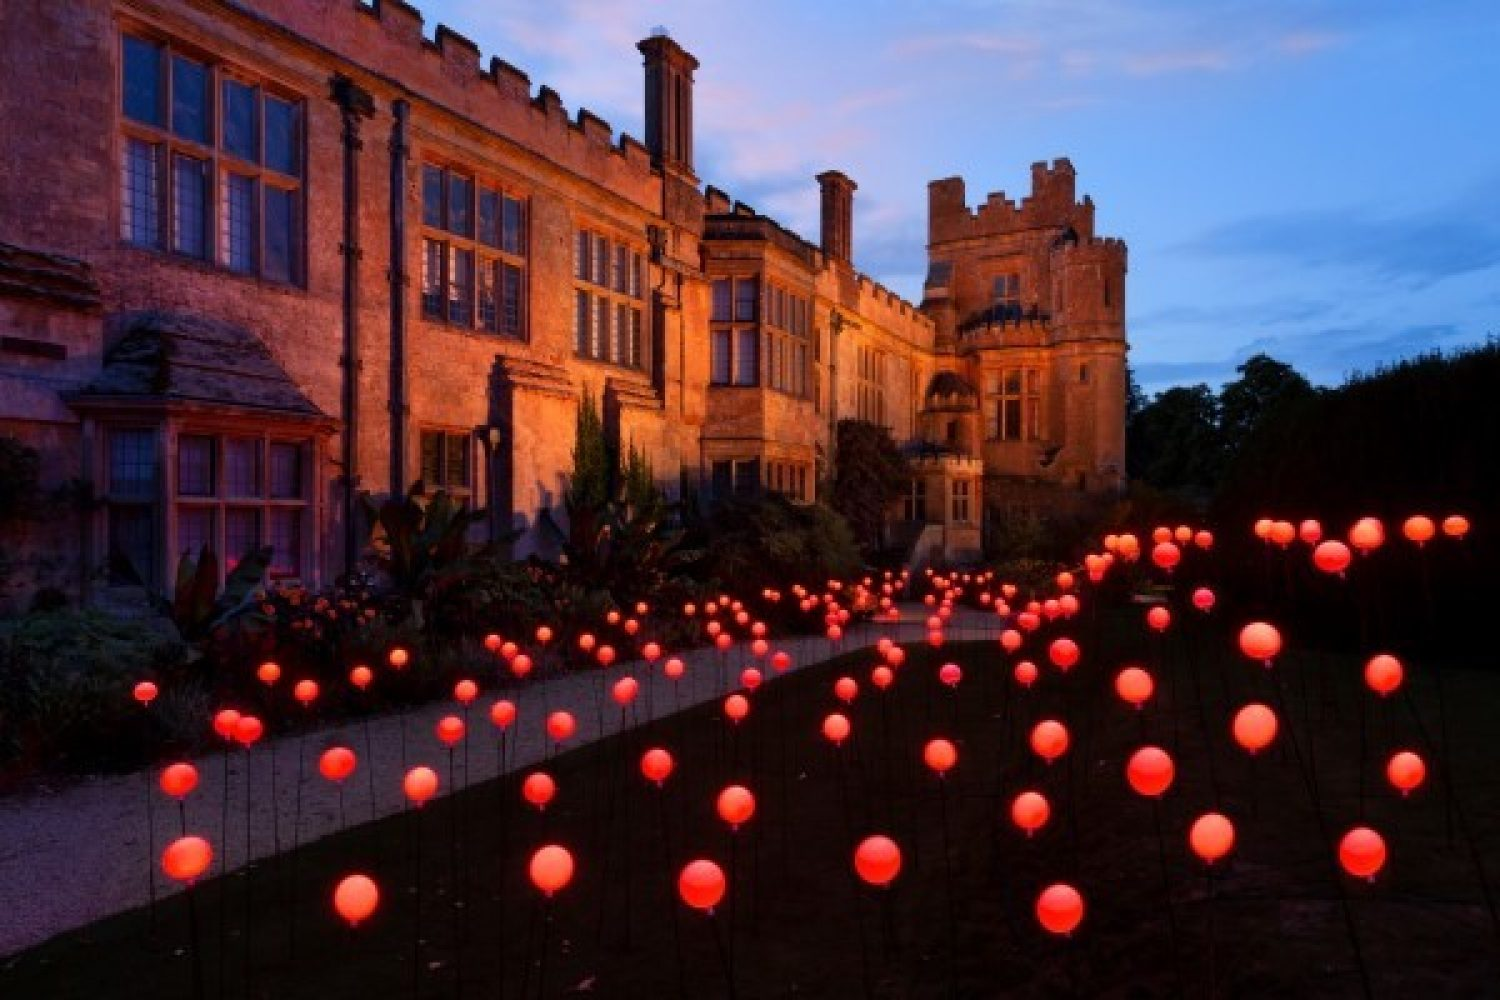 Dusk shot of field of illuminated poppies outside exterior of Sudeley Castle